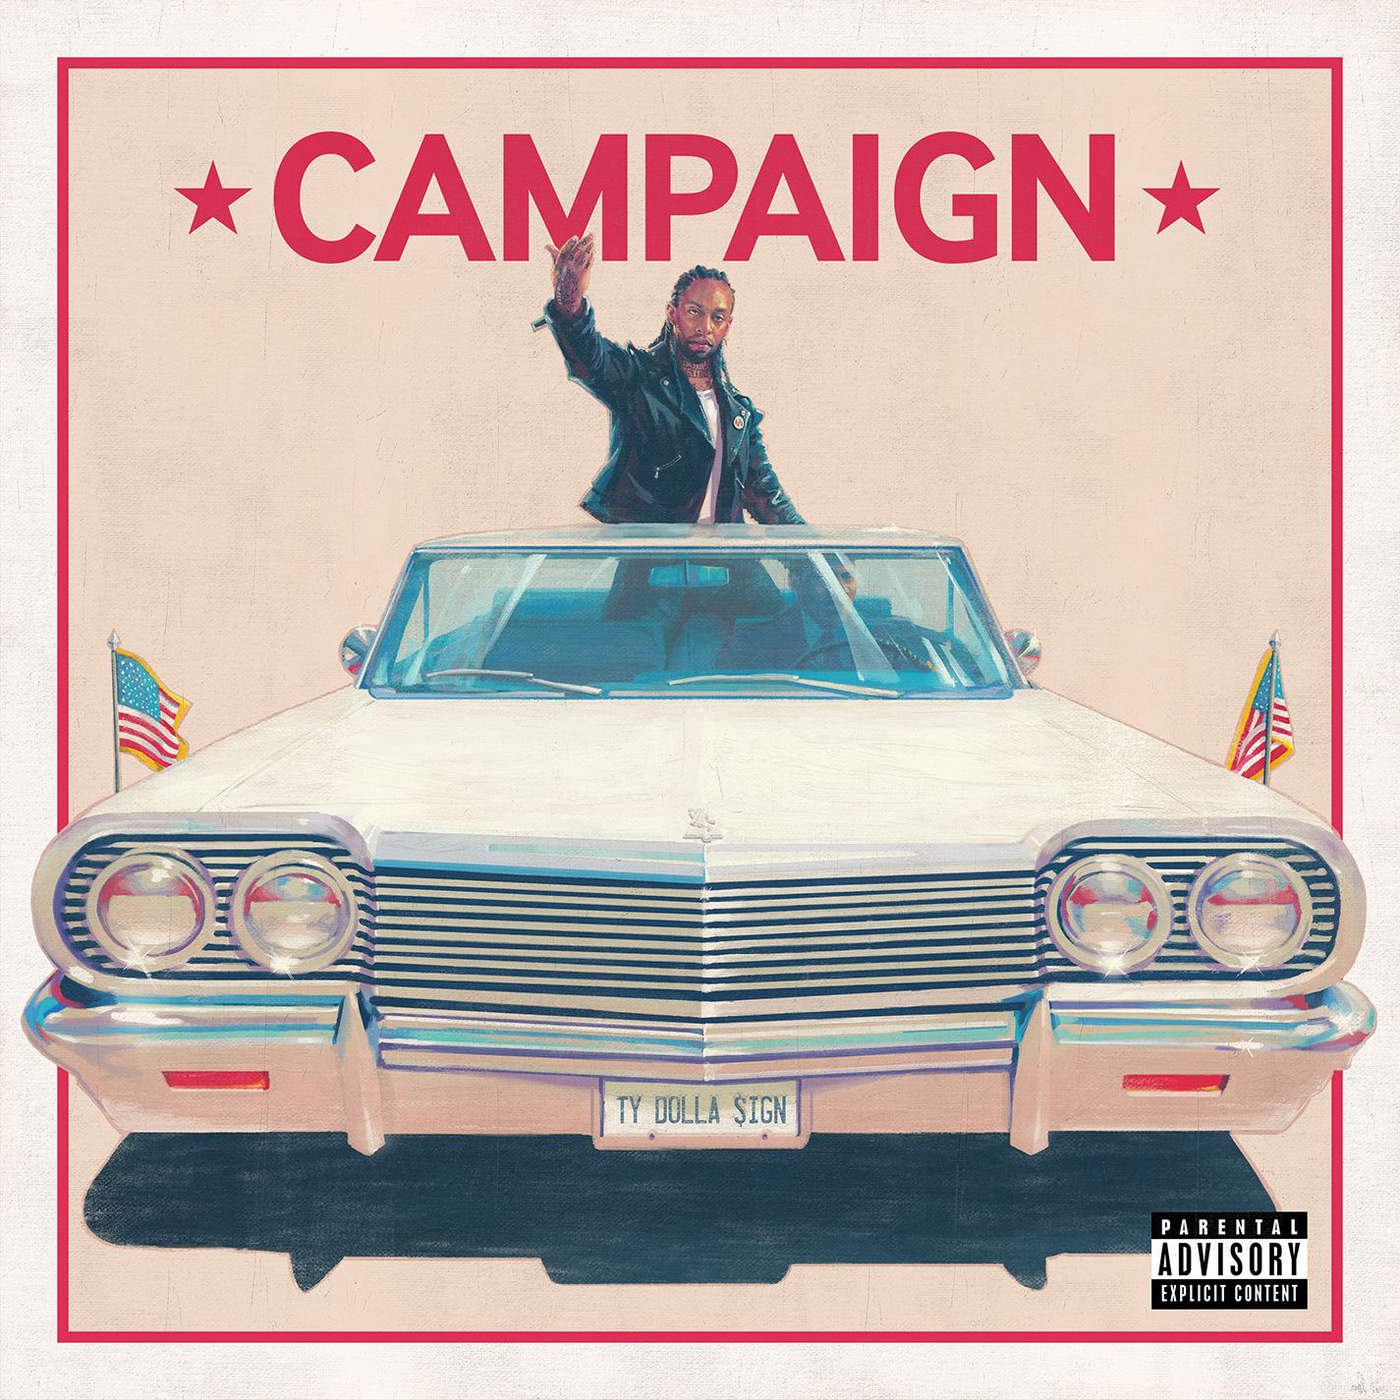 Ty Dolla Sign Flexes on His 'Campaign' Mixtape